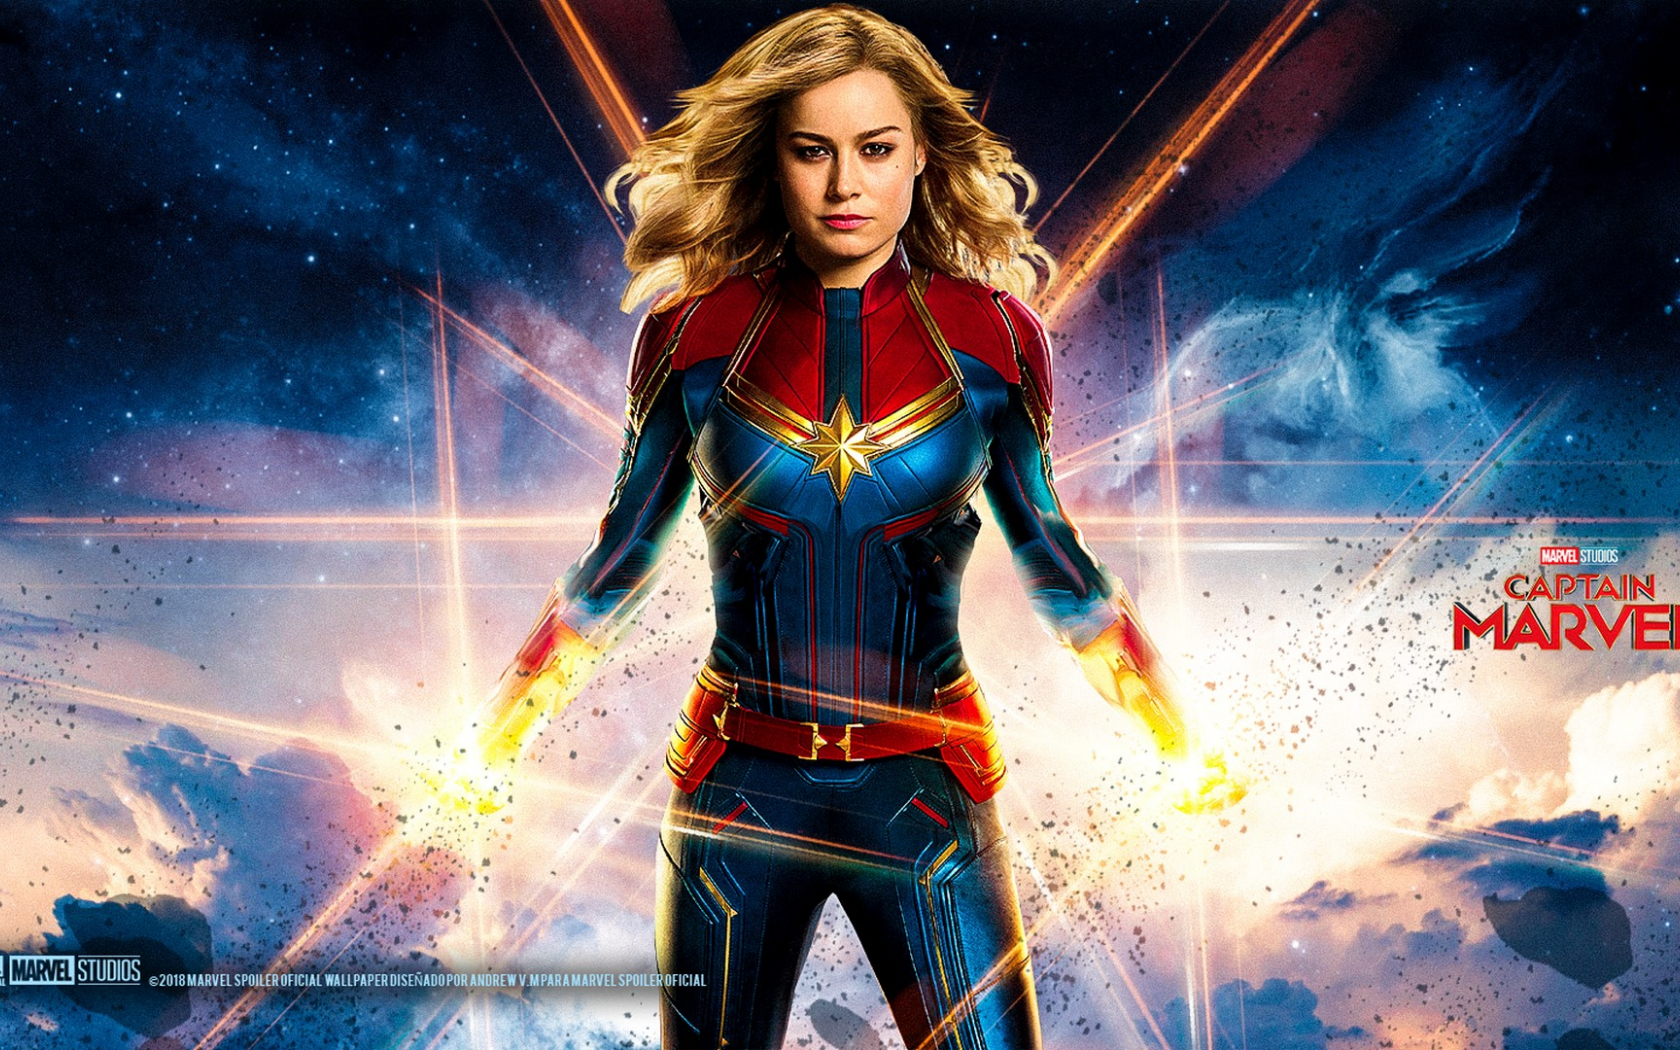 Free Download Captain Marvel Movie Wallpaper 2019 Movie